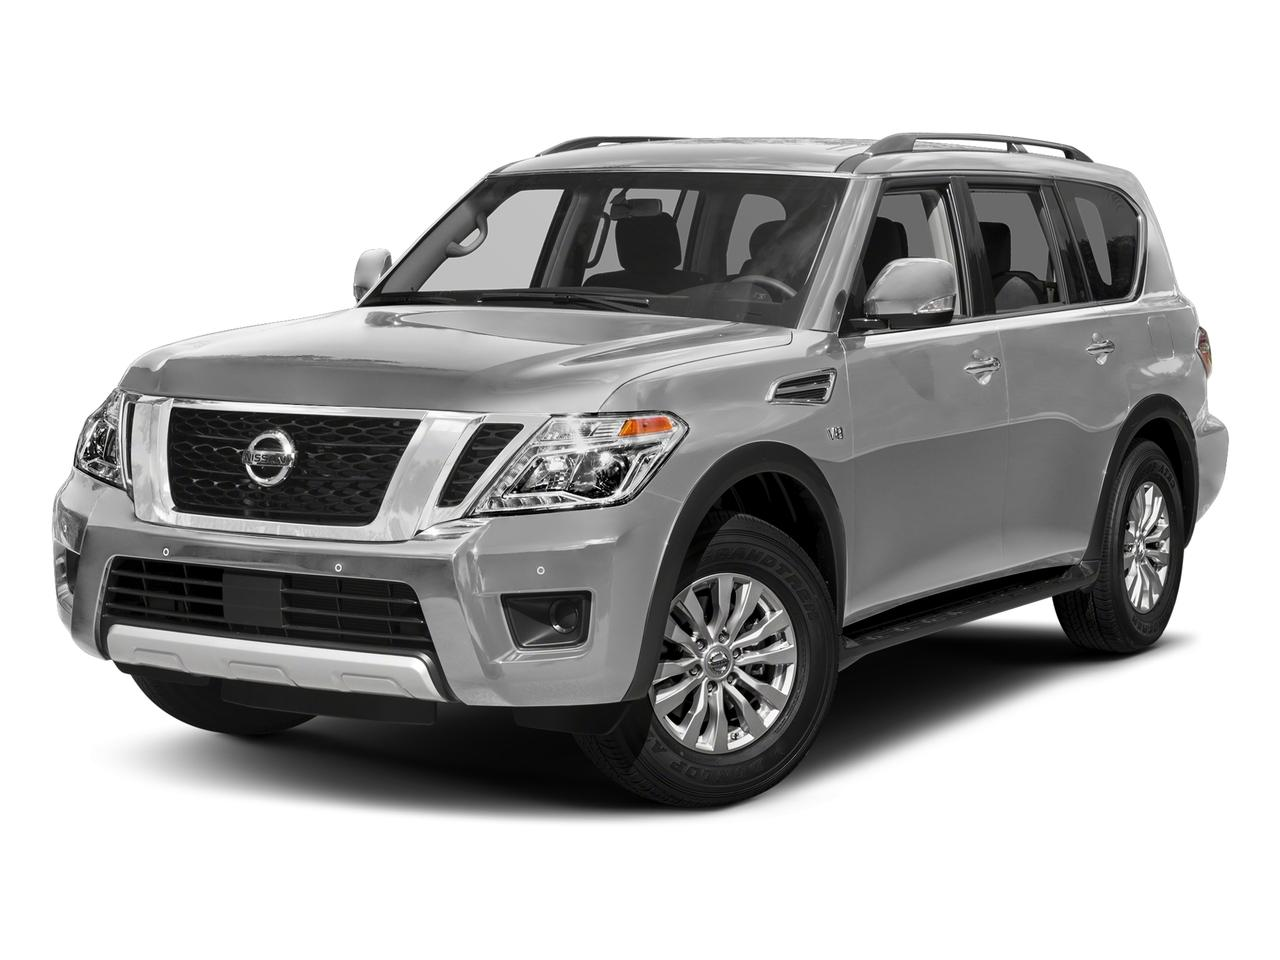 2017 Nissan Armada Vehicle Photo in Medina, OH 44256